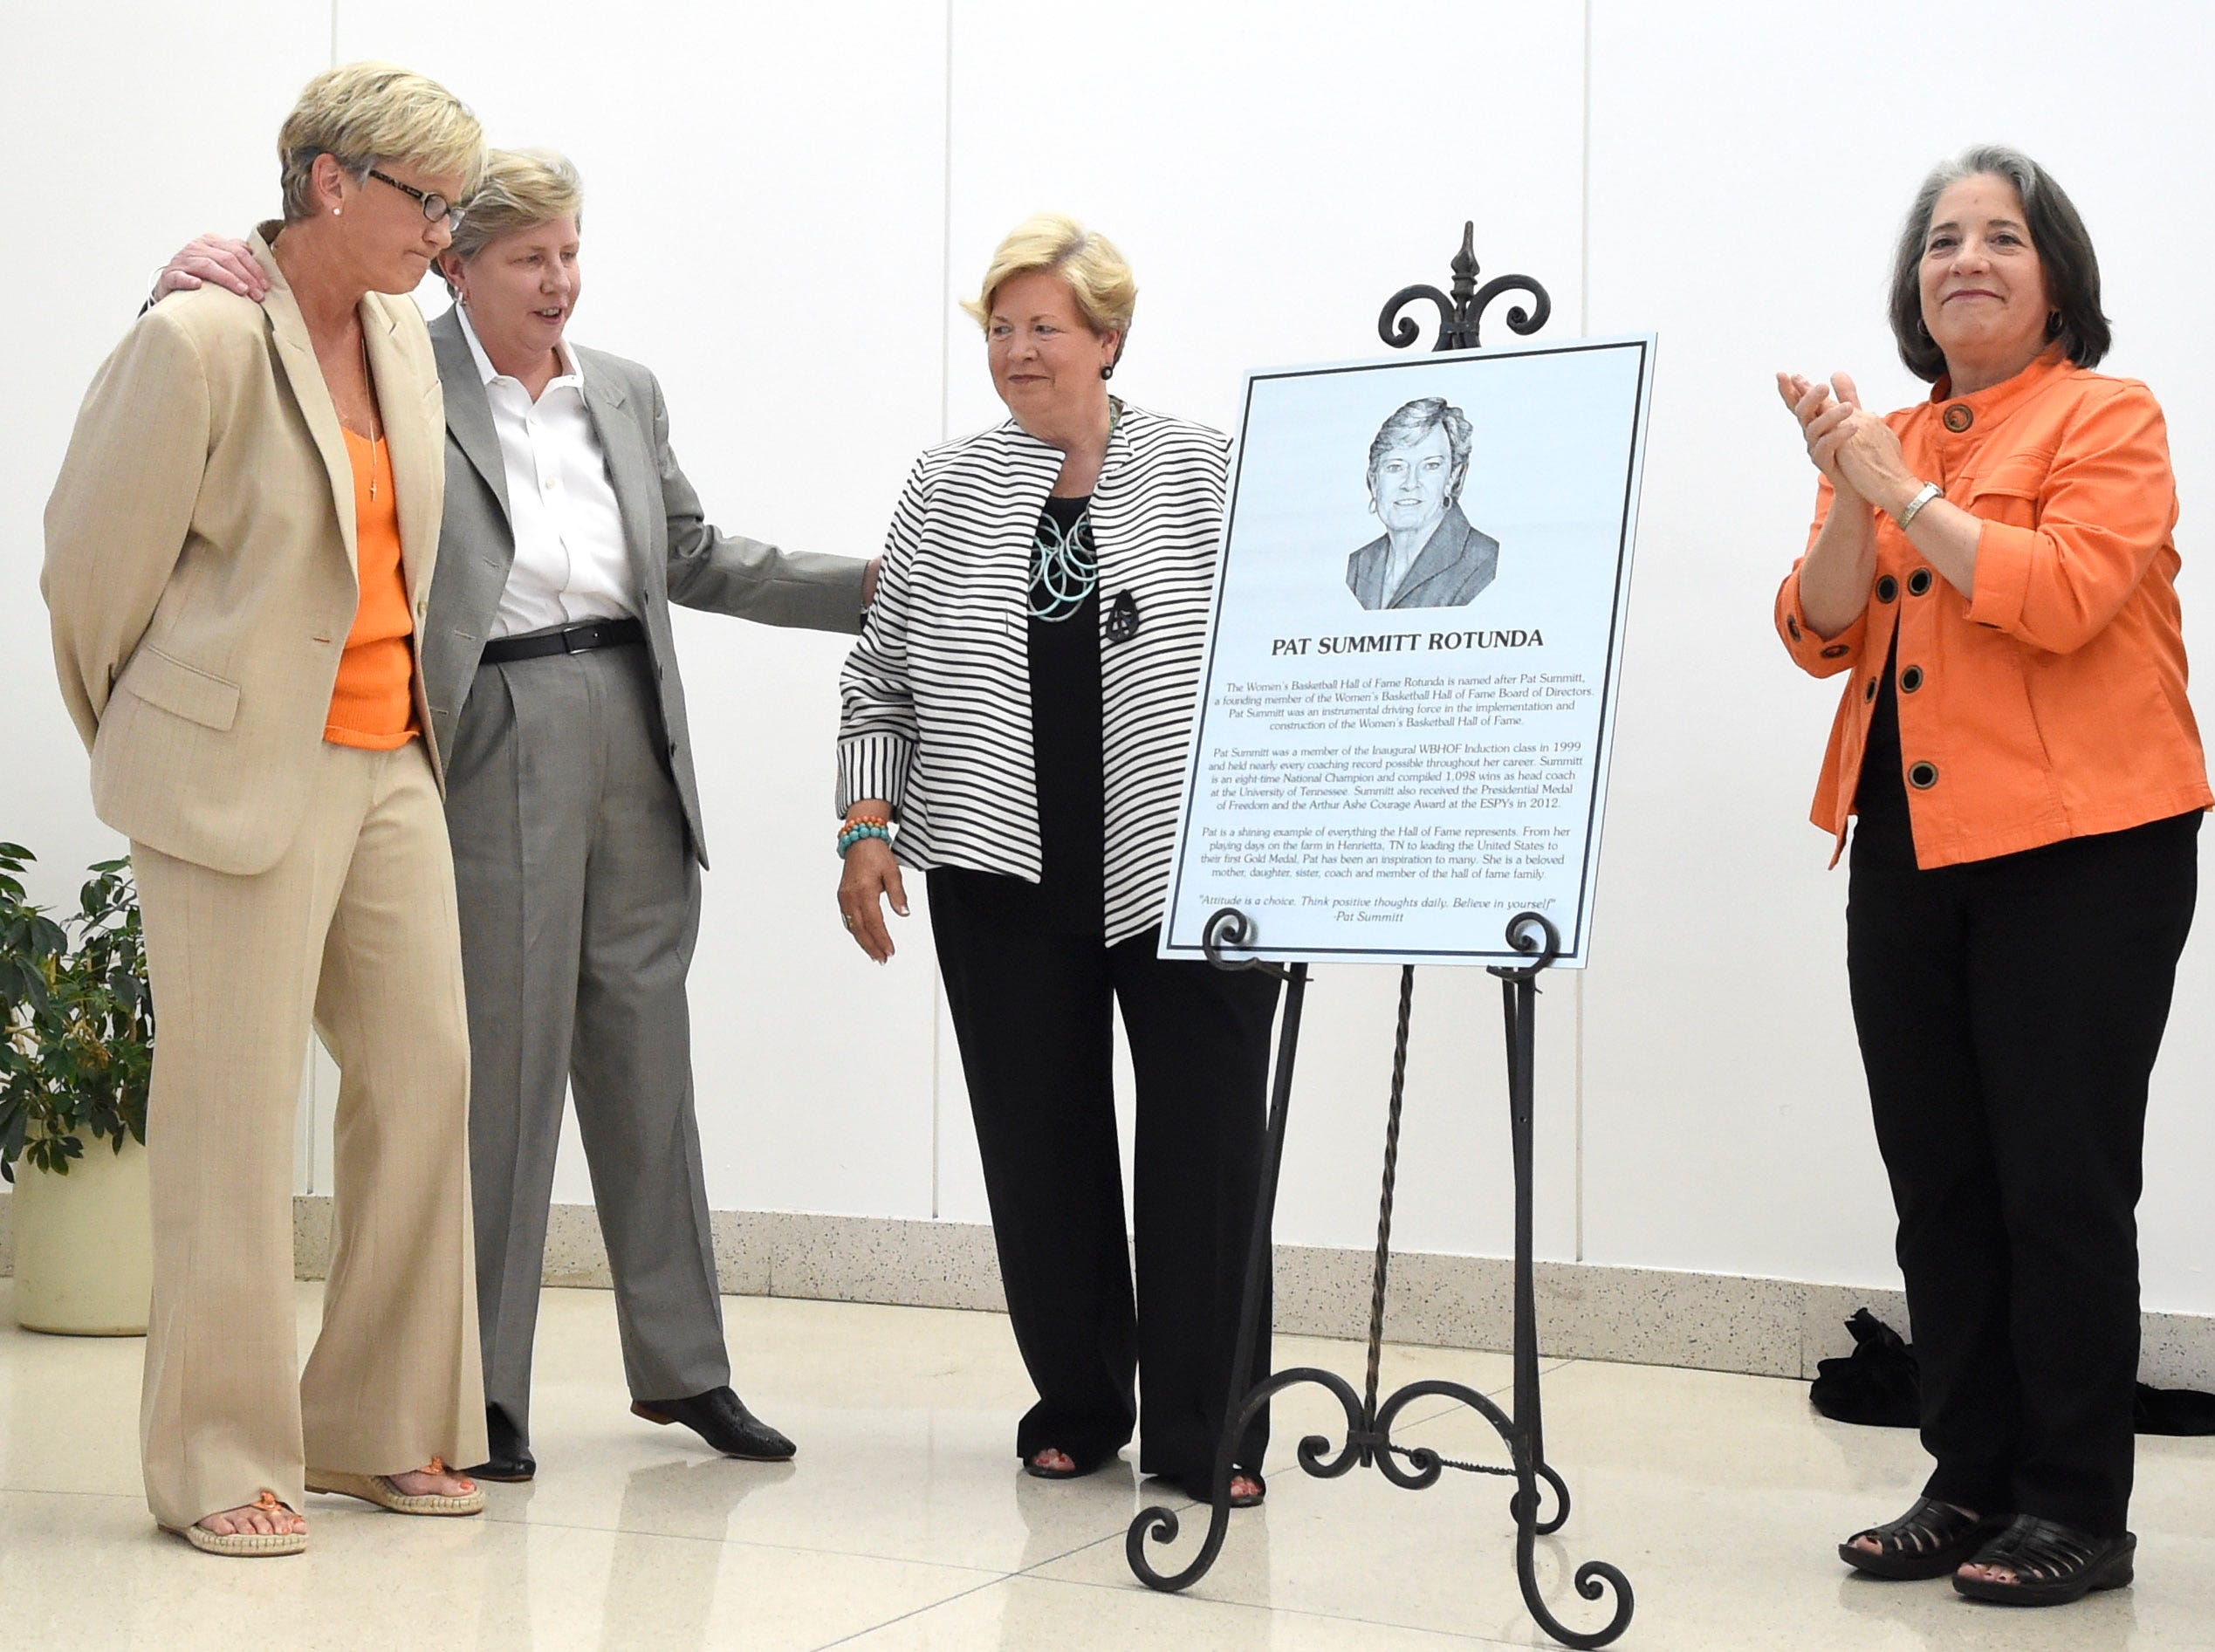 Tennessee women's basketball coach Holly Warlick, Women's Basketball Hall of Fame board president Sue Donohoe, and former Tennessee women's athletics director Joan Cronan, from left, look on as Knoxville city mayor Madeline Rogero, right, applauds after revealing a plaque honoring former Tennessee women's basketball coach Pat Summitt at the Women's Basketball Hall of Fame on Friday, June 12, 2015. The Hall's South Rotunda was named in Summitt's honor.